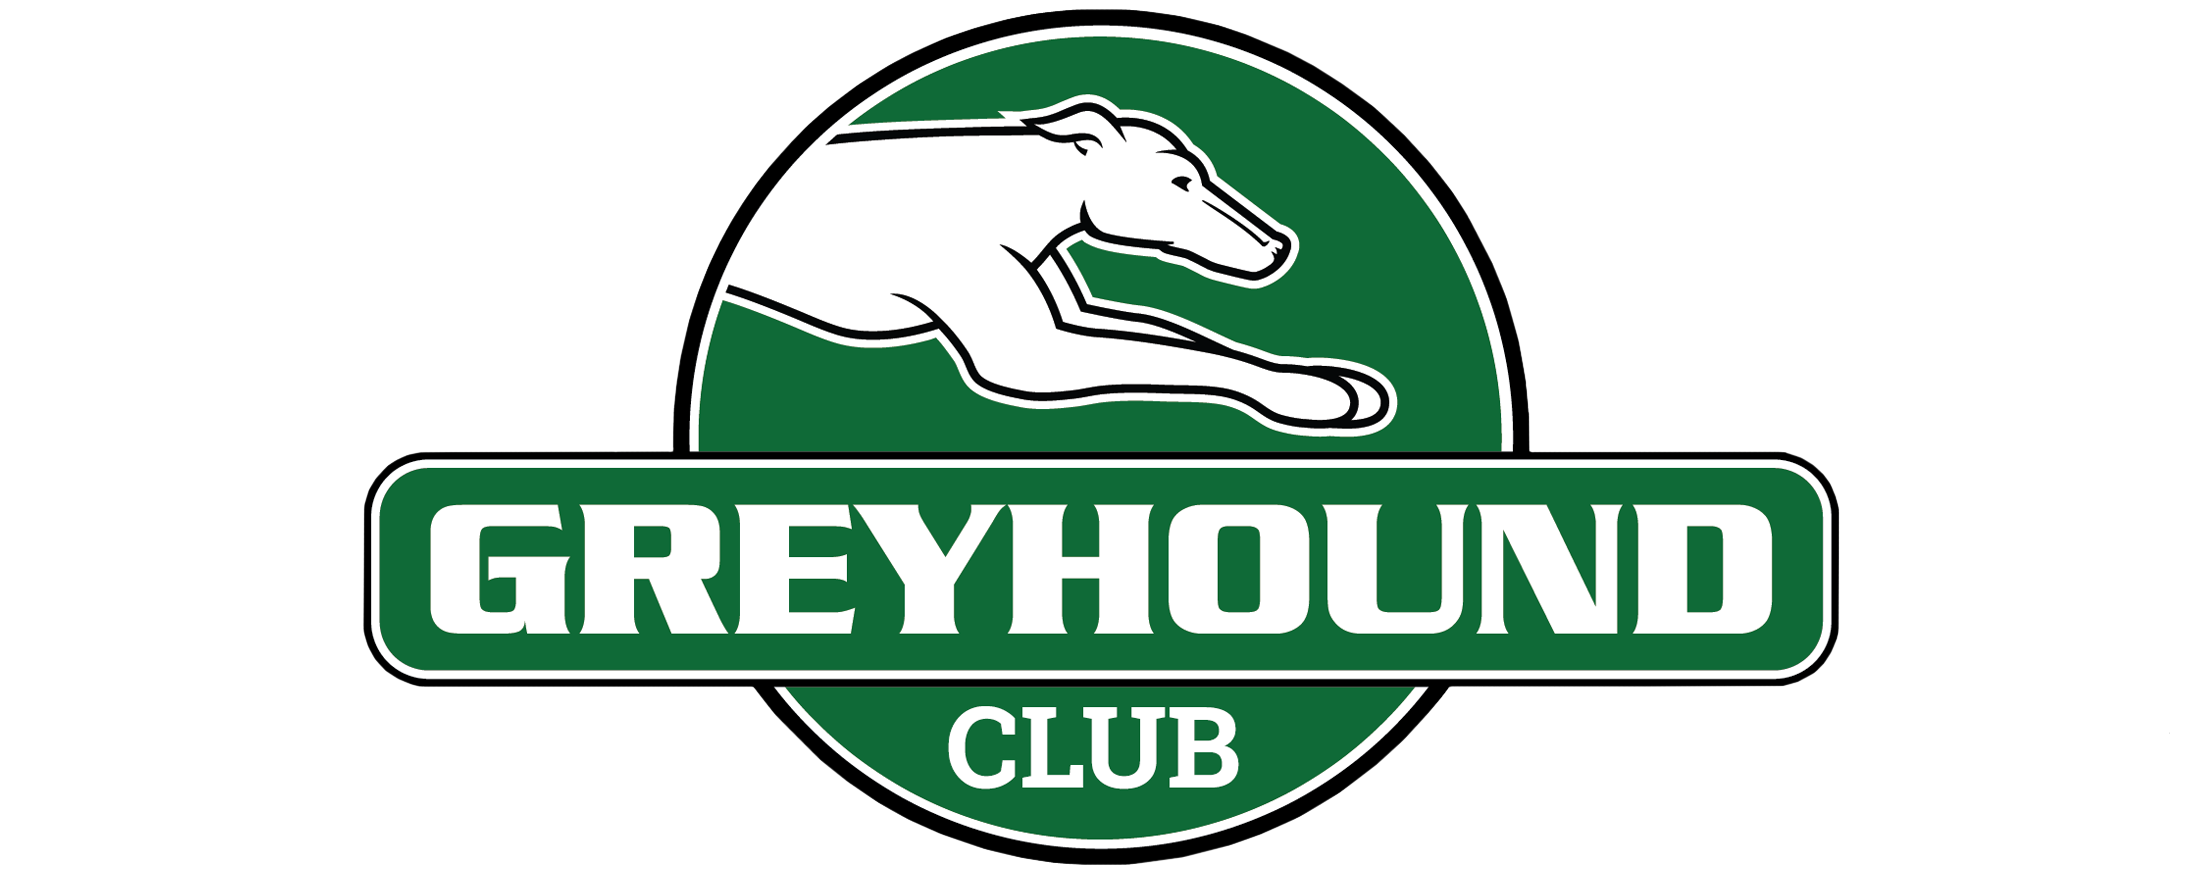 Greyhound club logo 2015 %28002%29 with white border